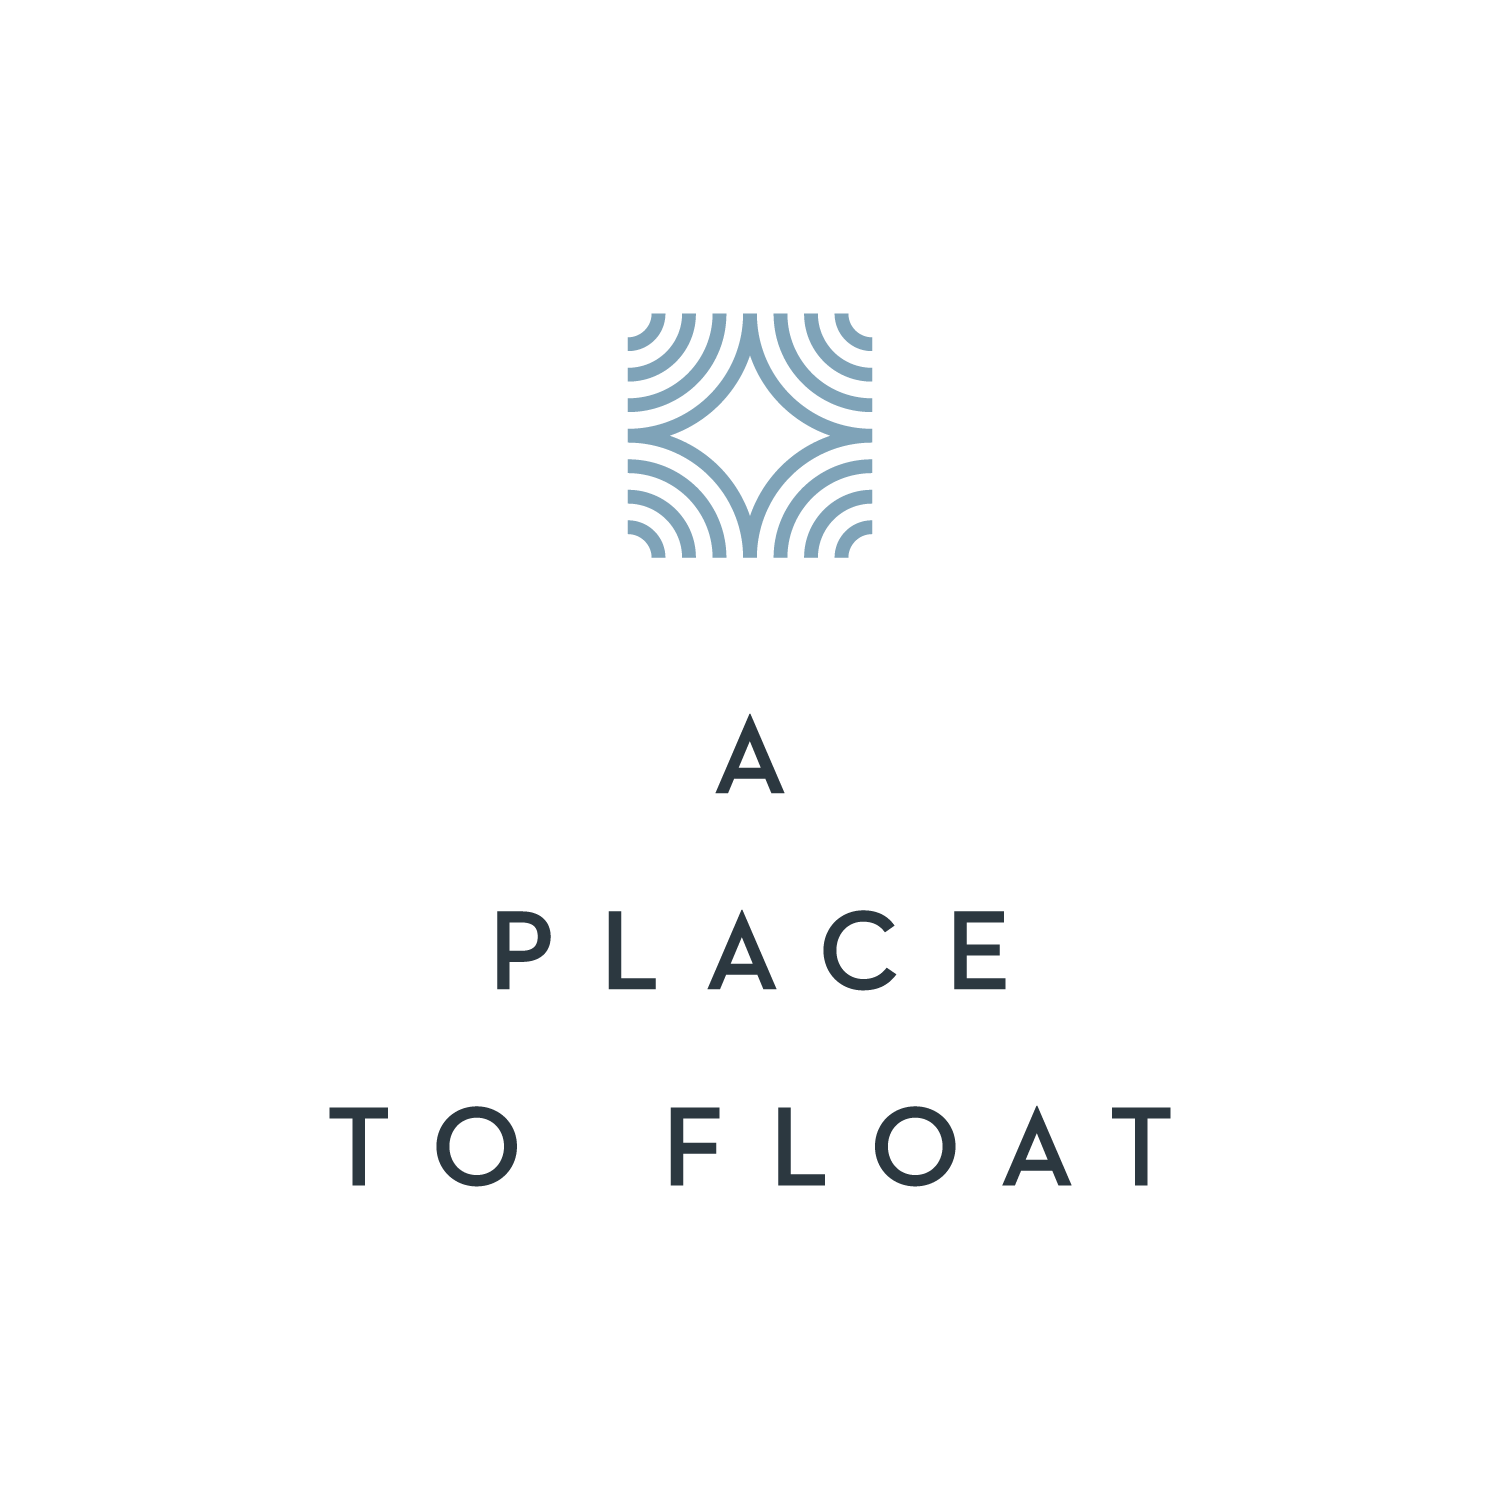 A Place to Float 425 W. South St Indianapolis